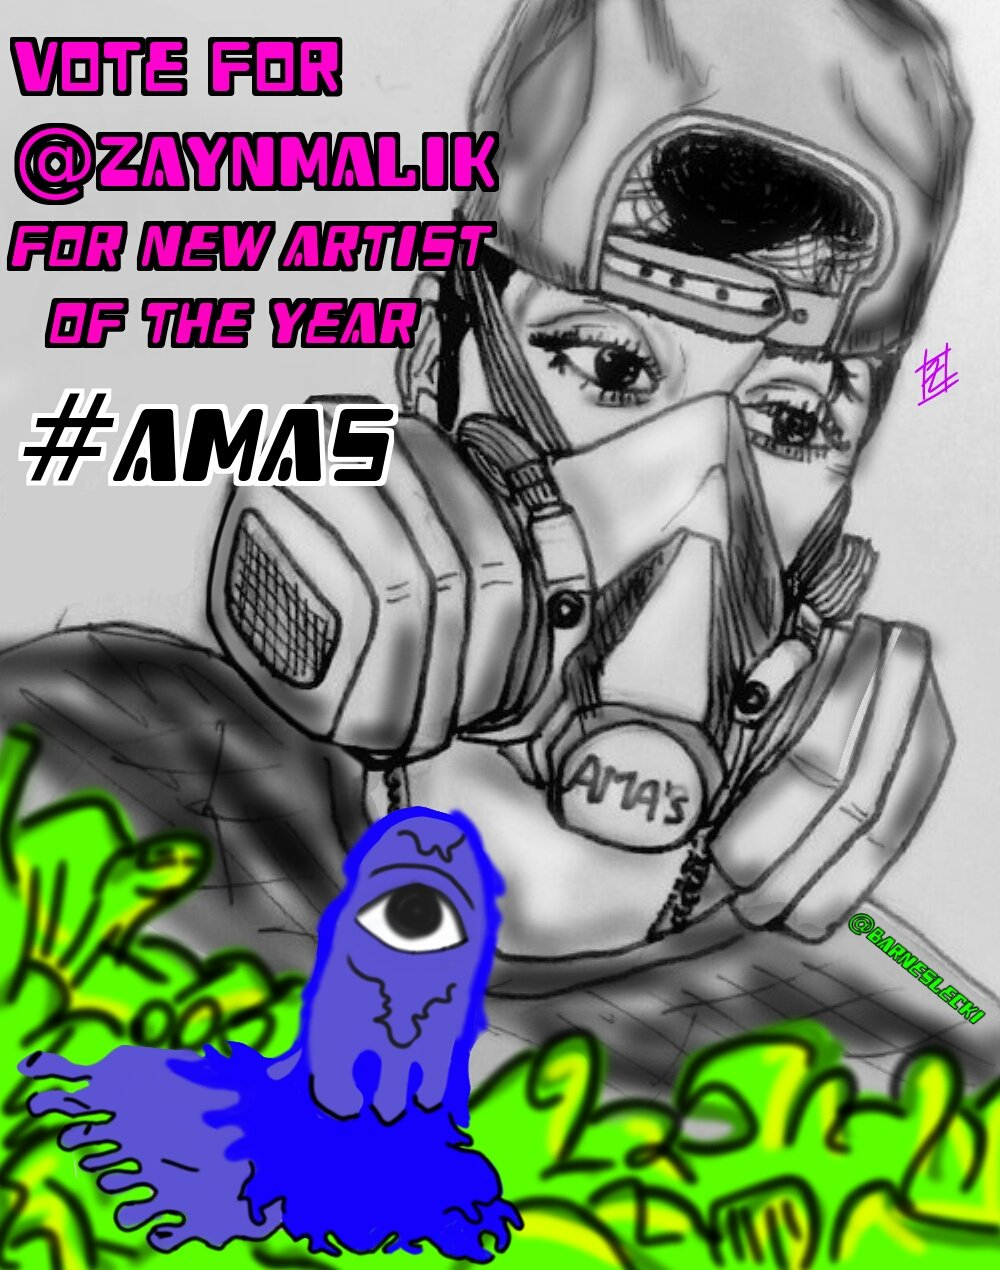 Tag 10 mutuals and RT to vote for Zayn ����  I'm voting for @zaynmalik for New Artist of the Year  #AMAs https://t.co/2agvgGTkXk